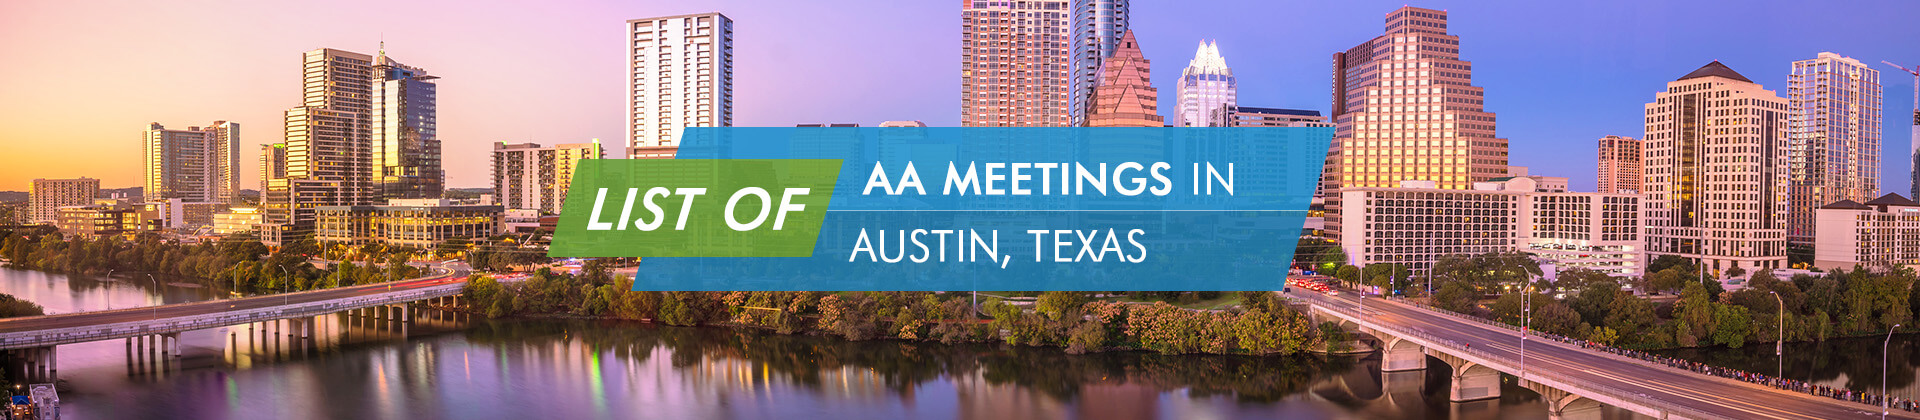 AA meetings Austin Texas